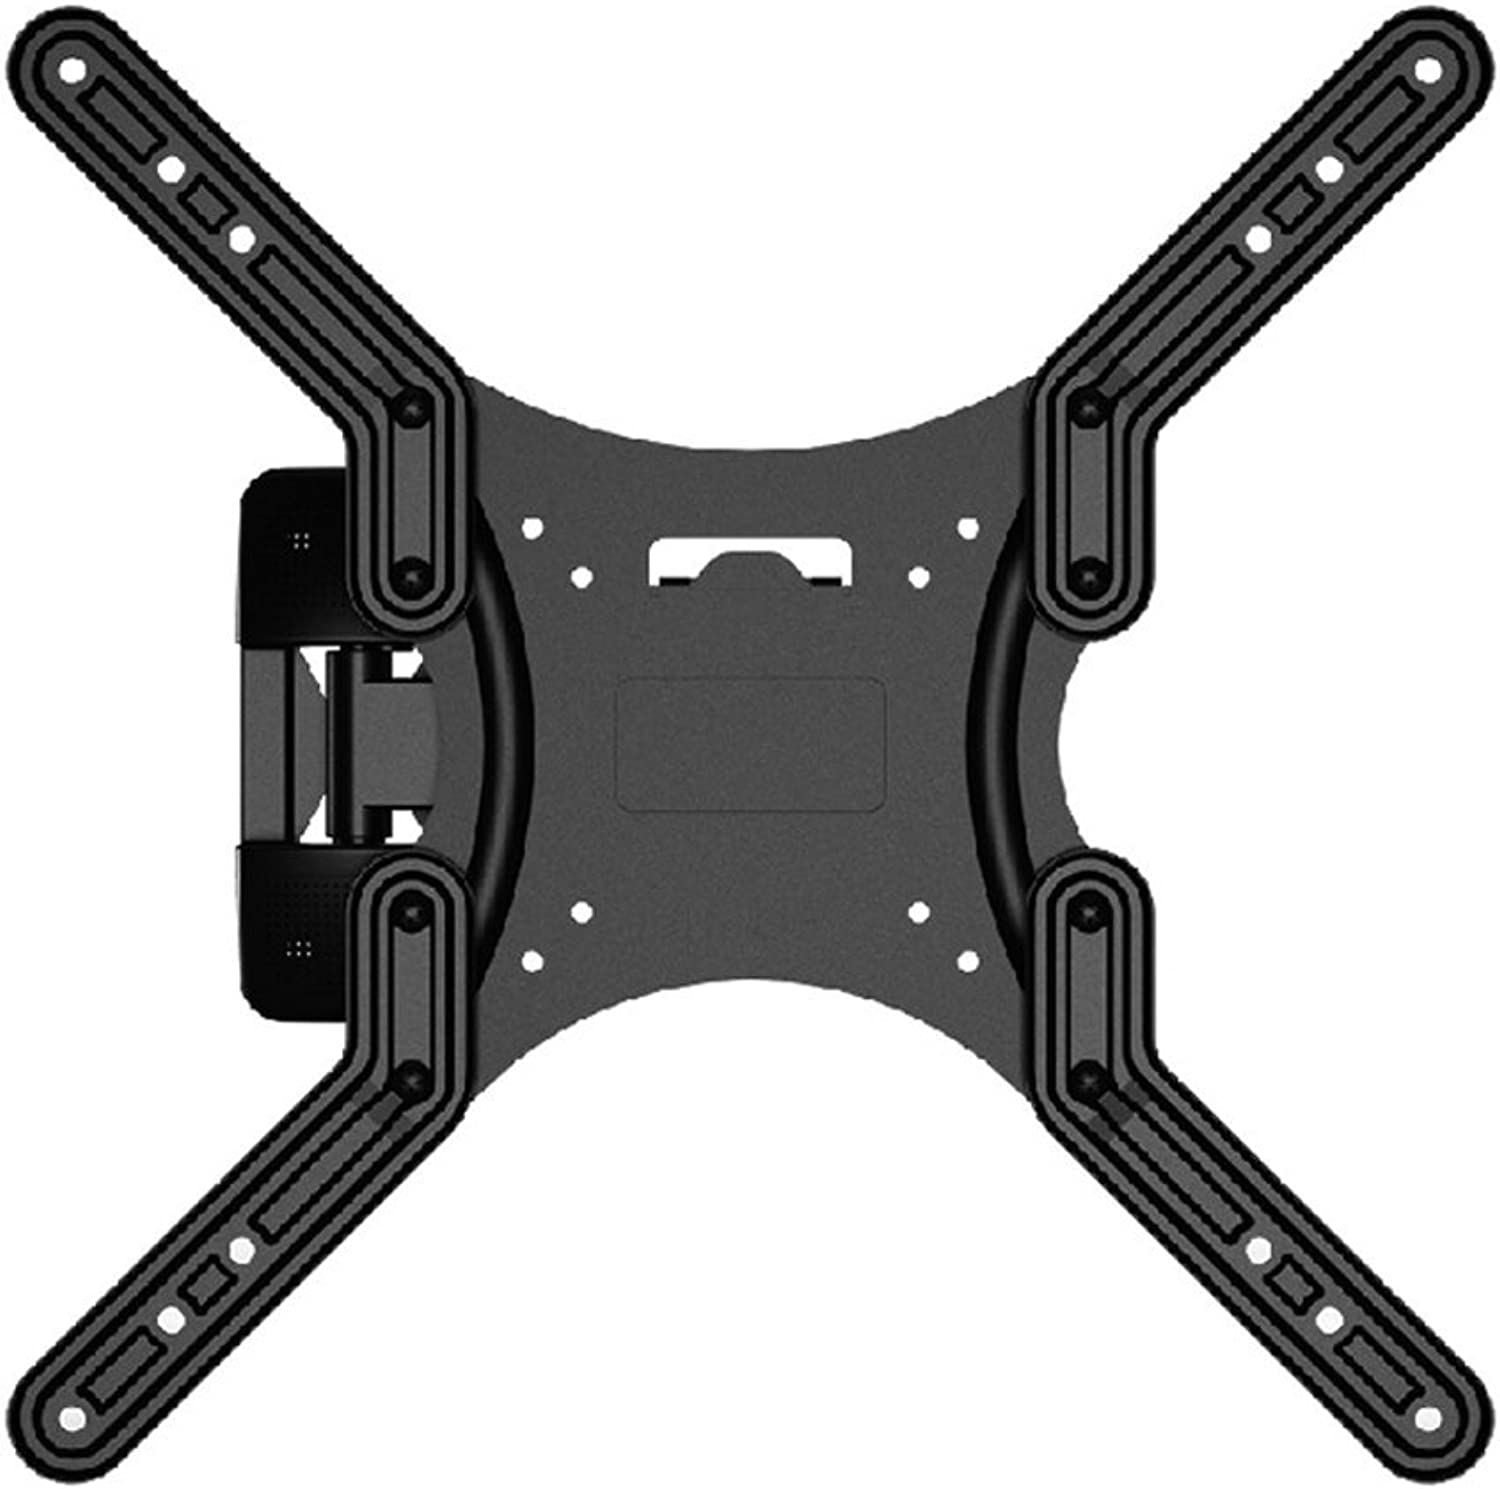 YFY SP200 Small TV Wall Mount Bracket Fits 32 -47  LCD TV